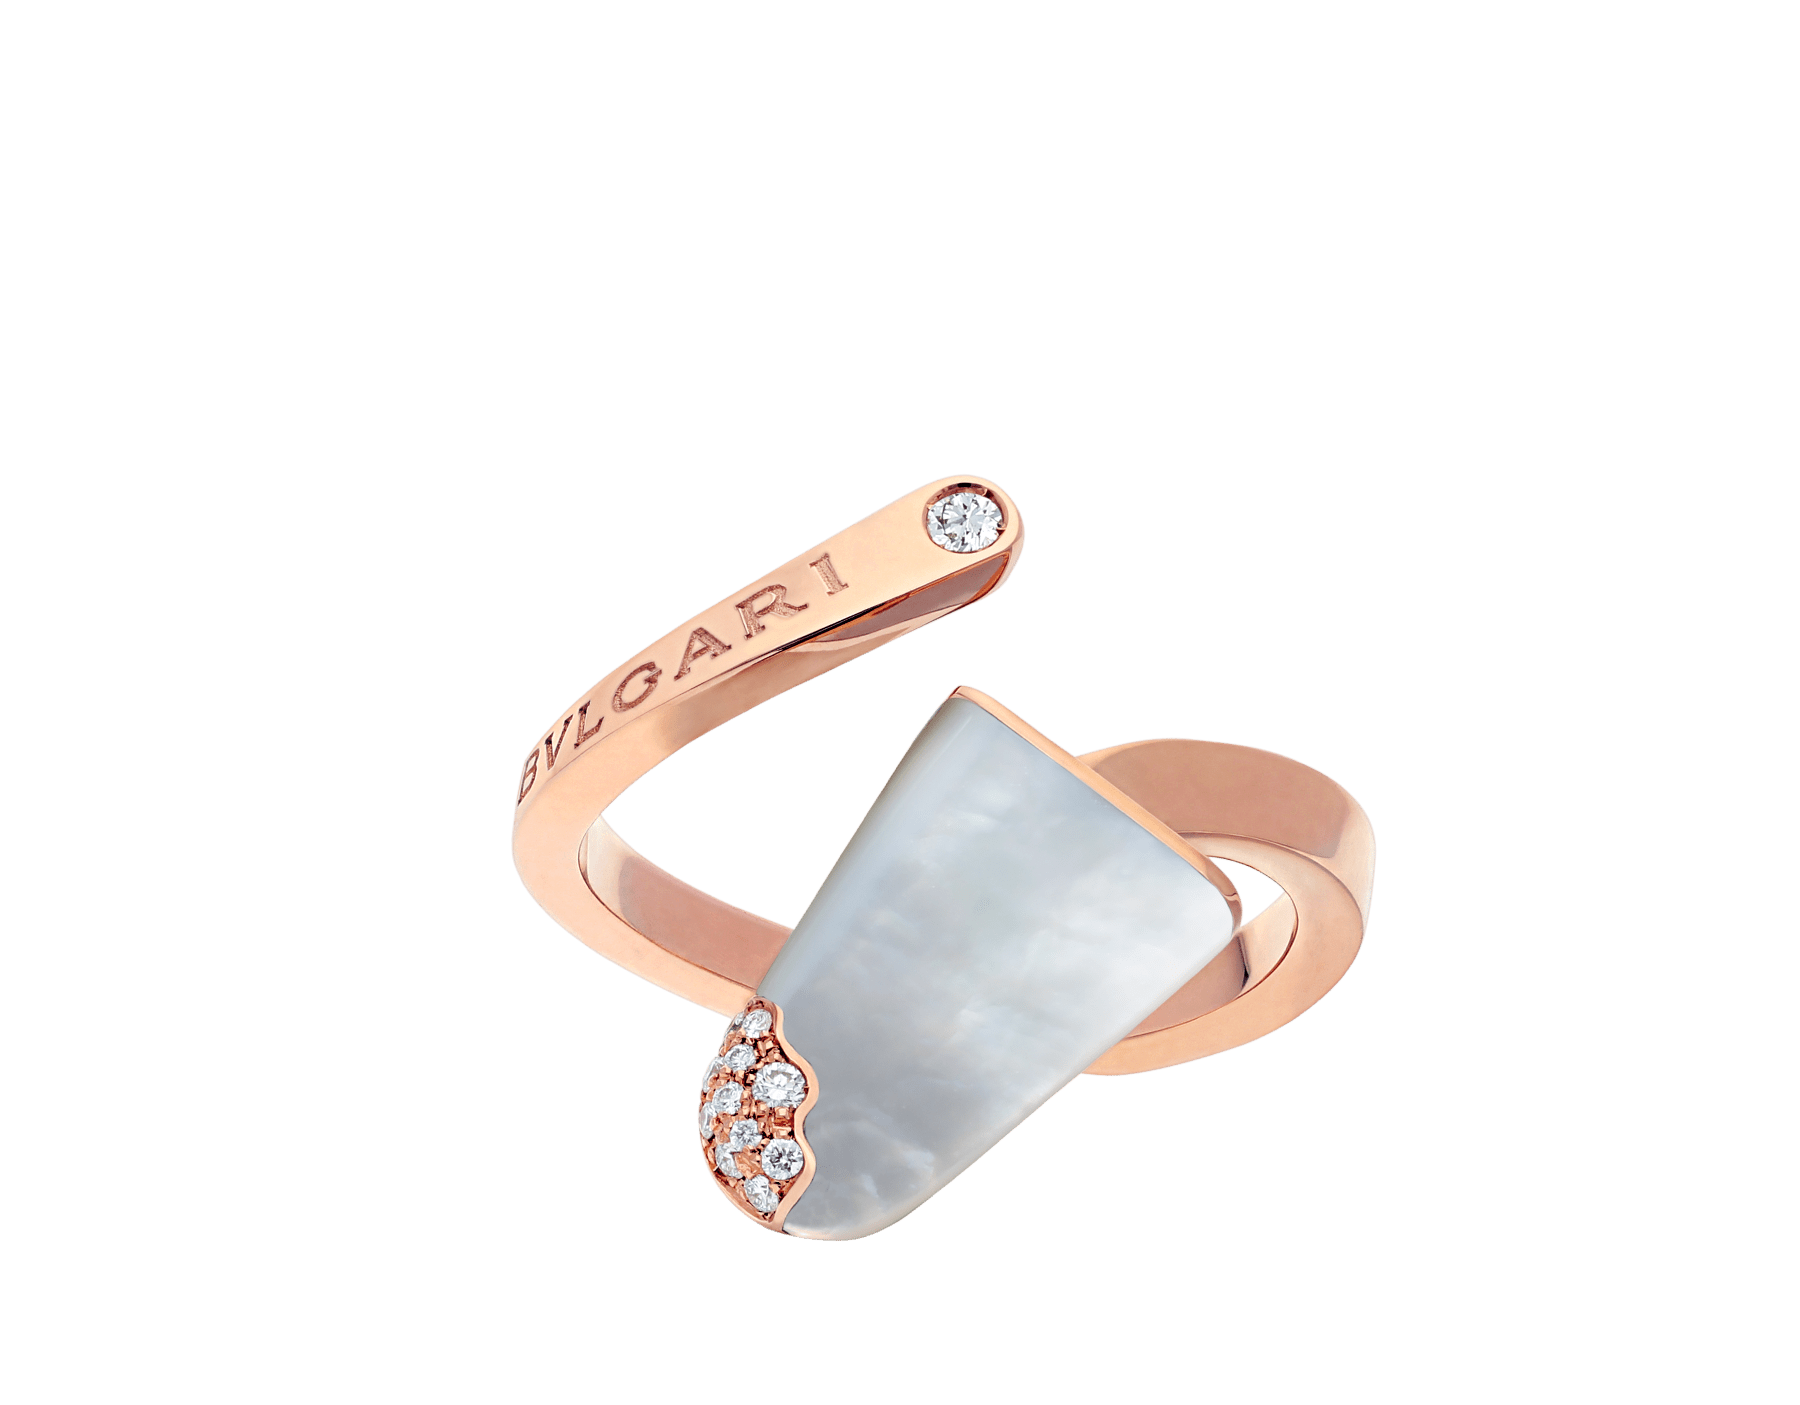 BVLGARI BVLGARI Gelati 18 kt rose gold ring set with mother-of-pearl and pavé diamonds AN858014 image 1